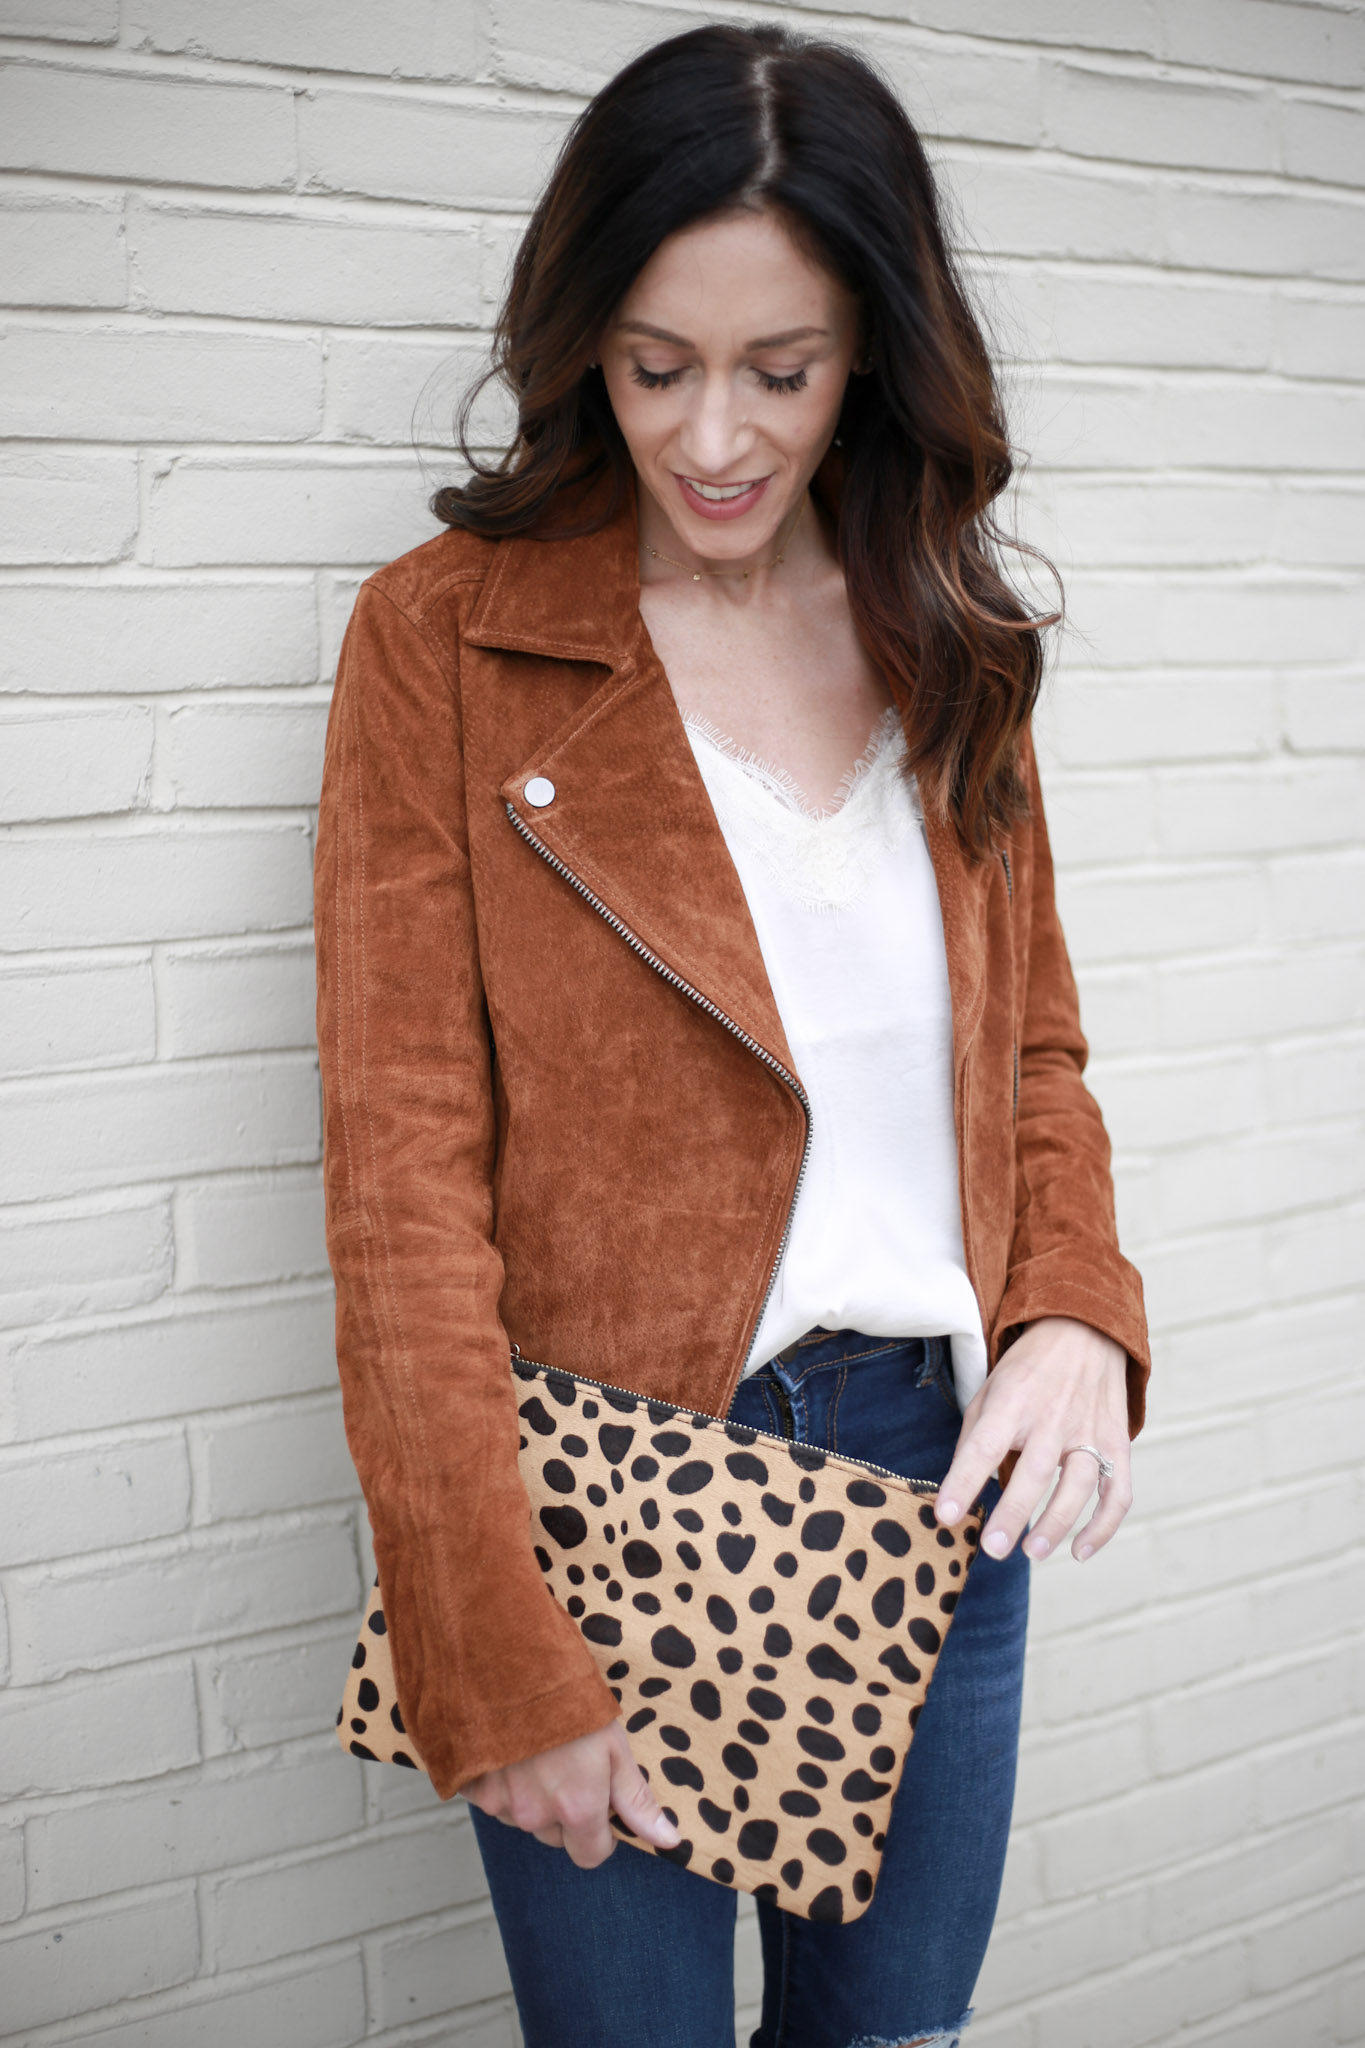 creating your capsule wardrobe series; Moto jacket - Capsule Wardrobe Series: Moto Jacket by Boston fashion blogger Living Life Pretty